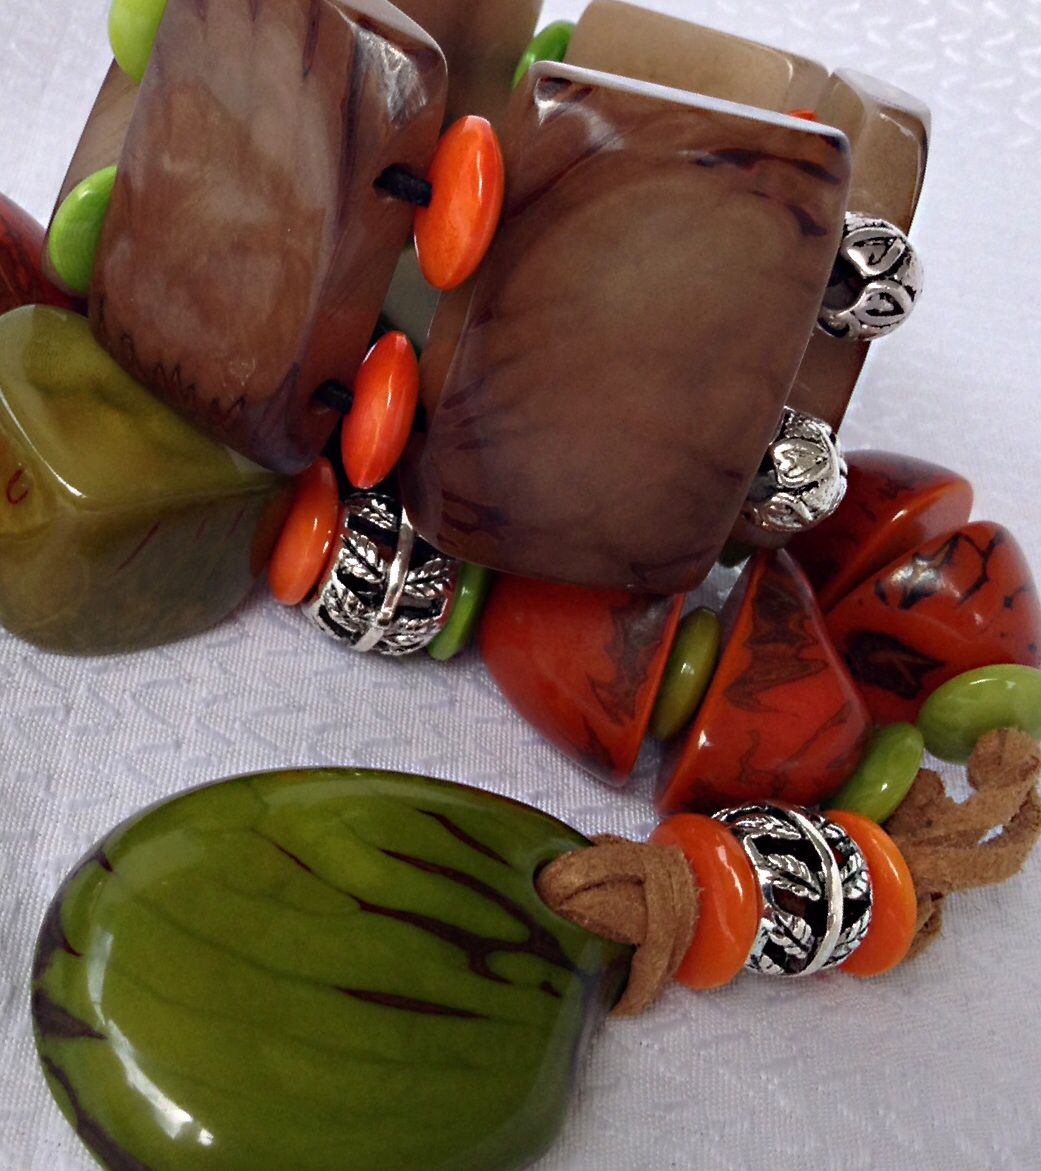 Feel the Caribbean Vibe. From Nature's vibrant Palette to exciting Eco Jewelry. Organic Eco Friendly Tagua Jewelry. Come check out my Etsy Shop for lots more inspiration! http://etsy.com/shop/tropicaaccessories?ref=_shop